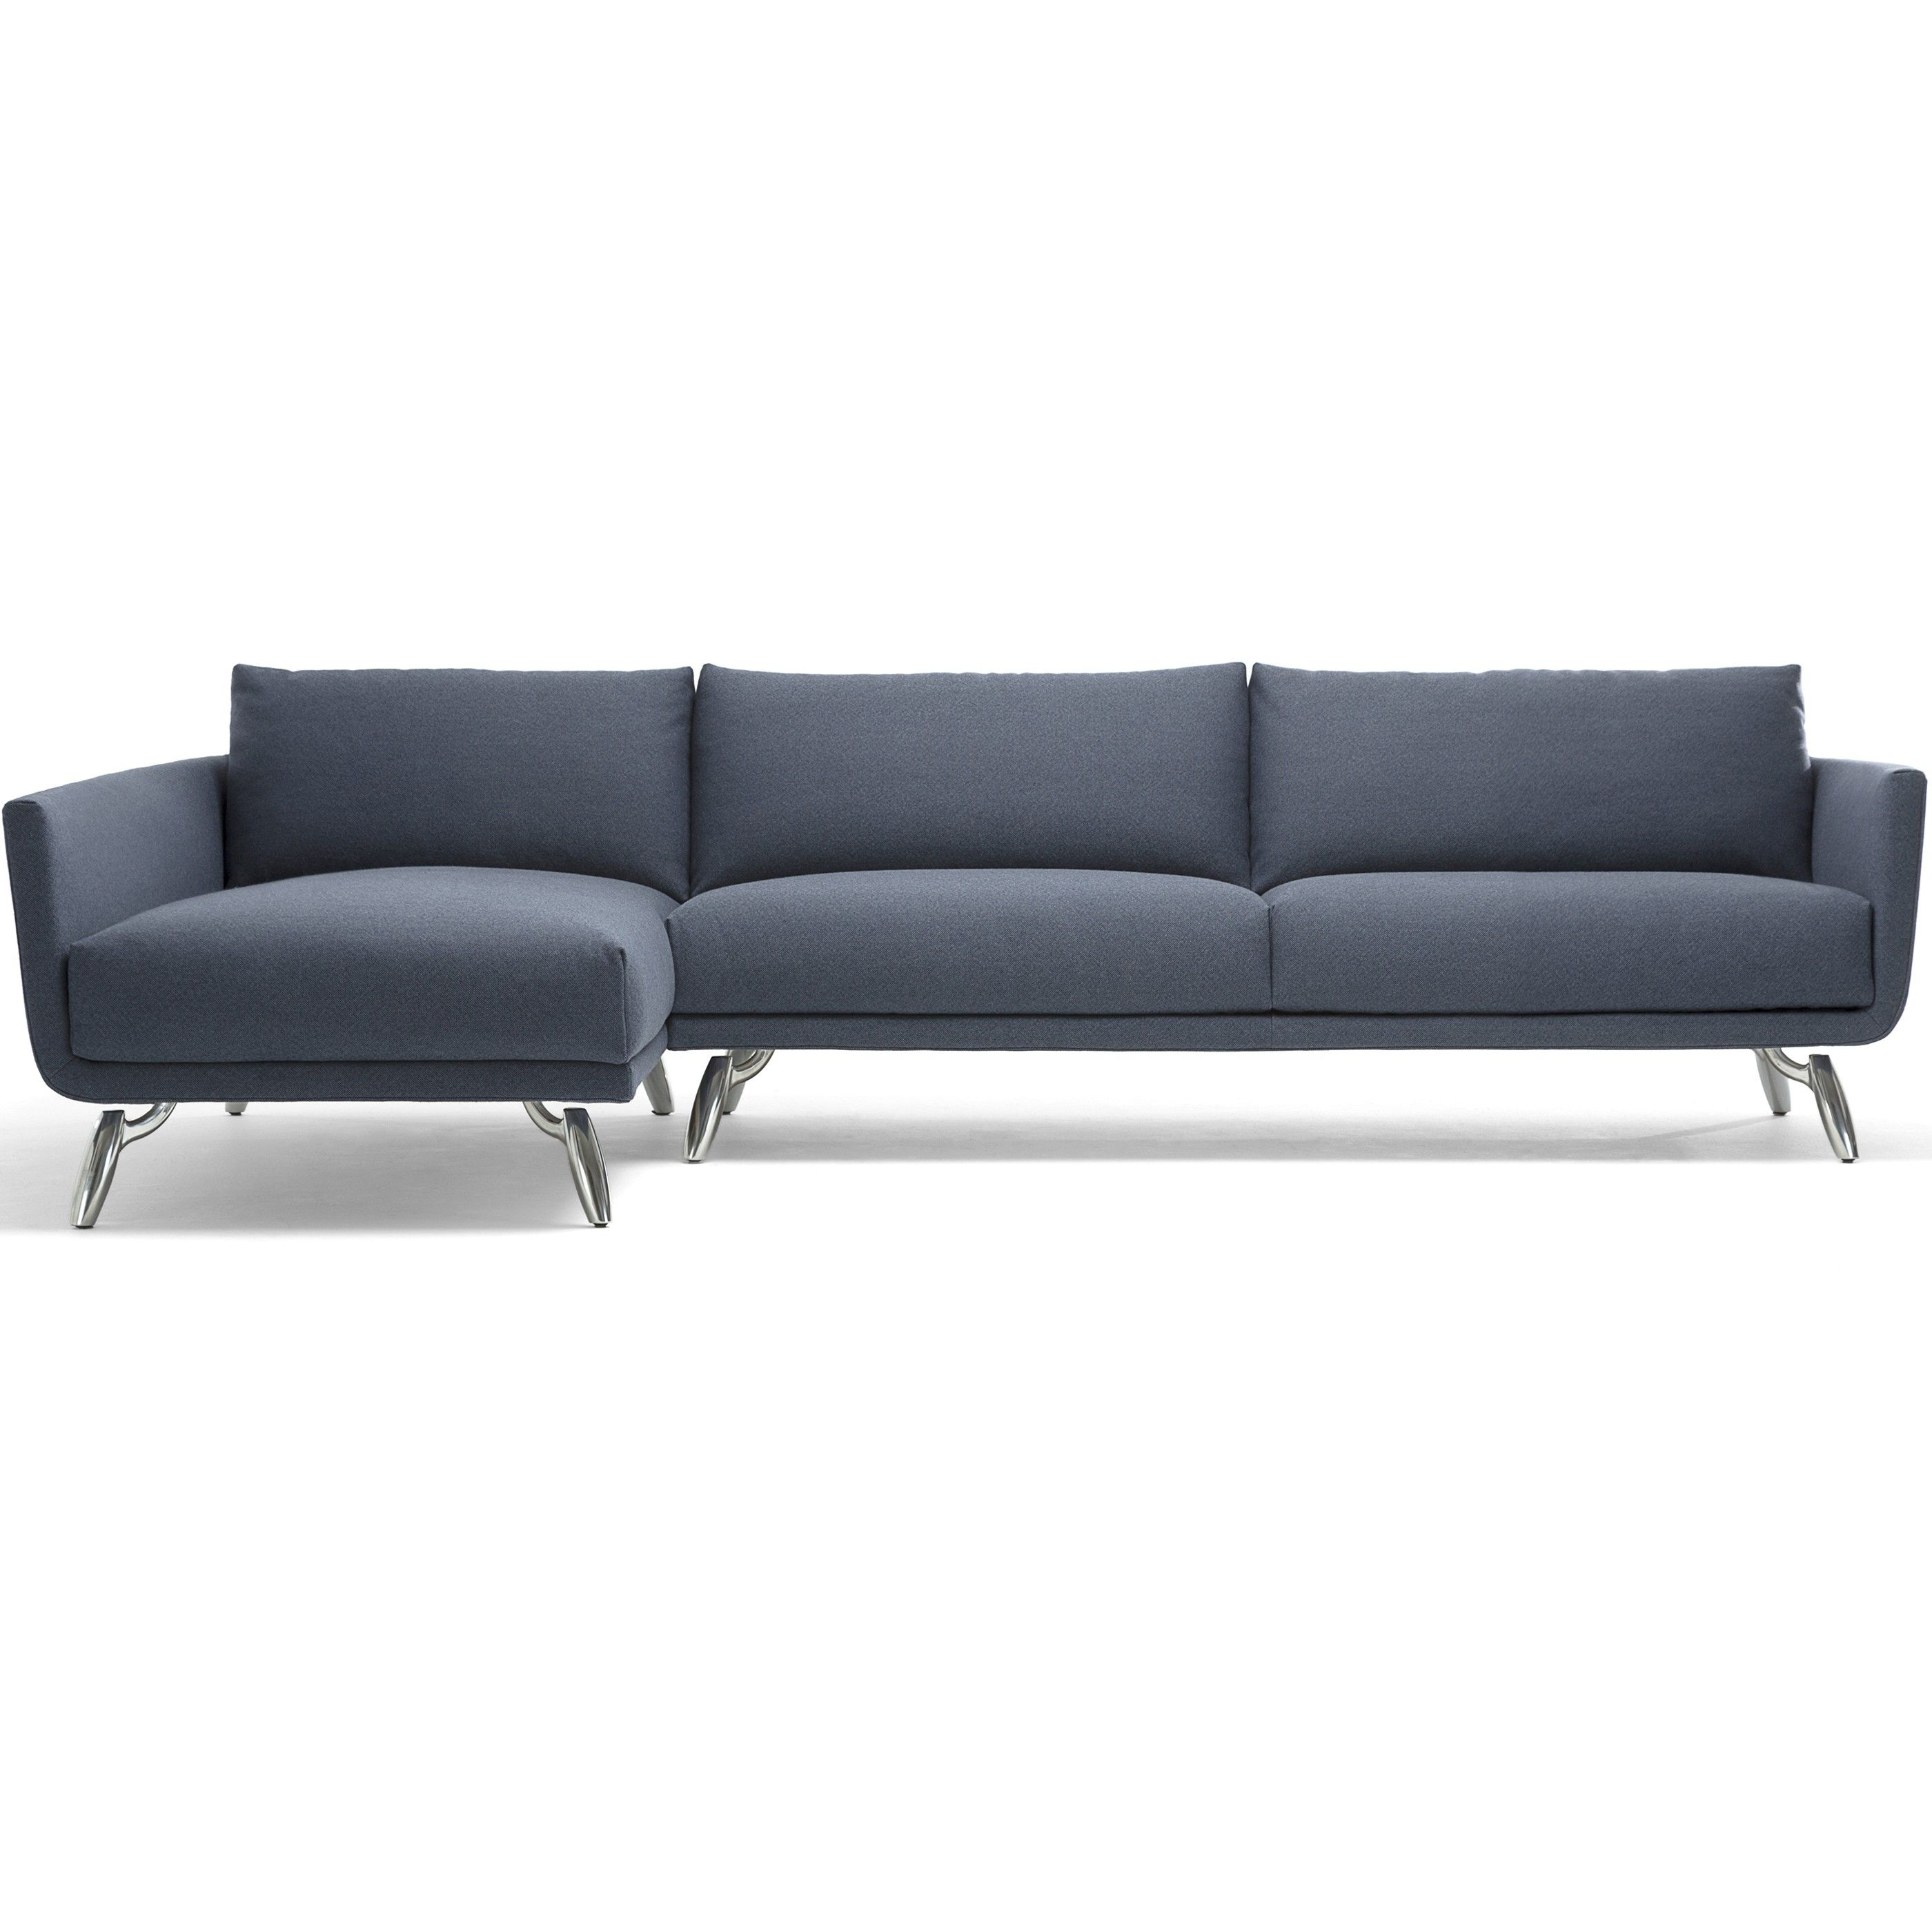 Design Bank 3 Zits.Design On Stock Byen Bank 3 Zits 1 Arm Chaise Longue